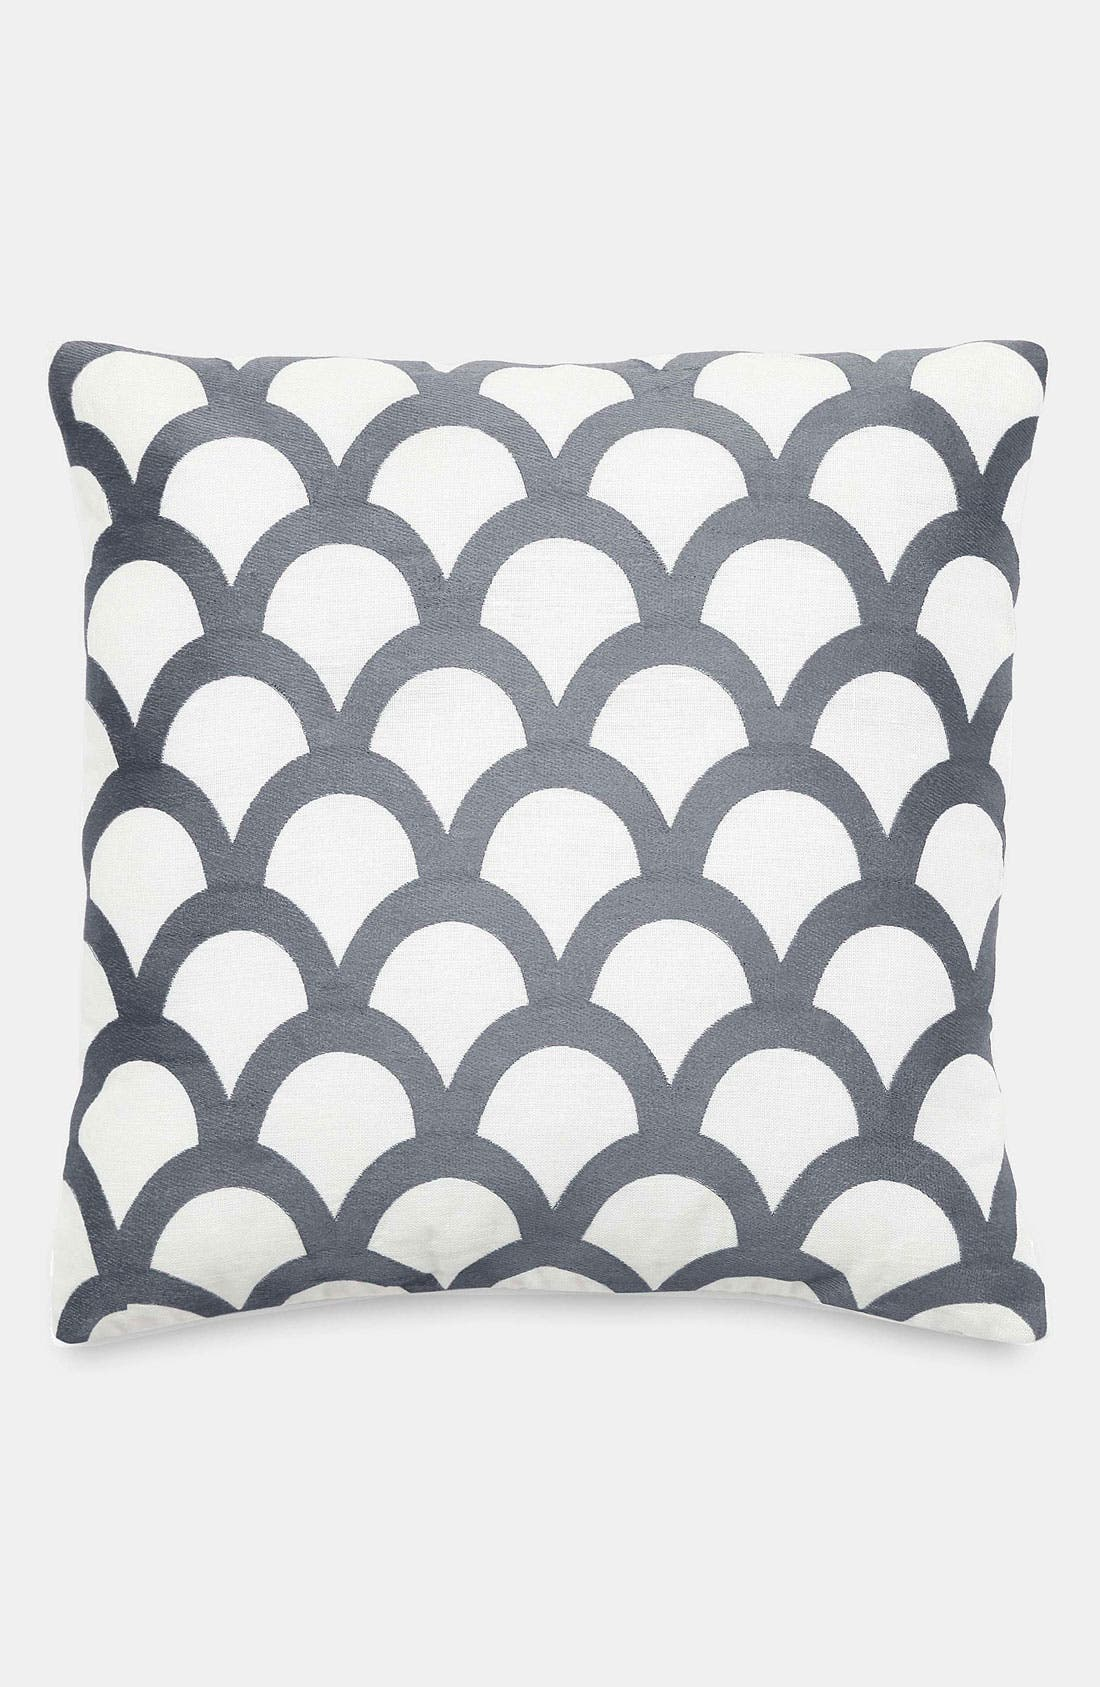 Alternate Image 1 Selected - kate spade new york 'embroidered scallops' pillow